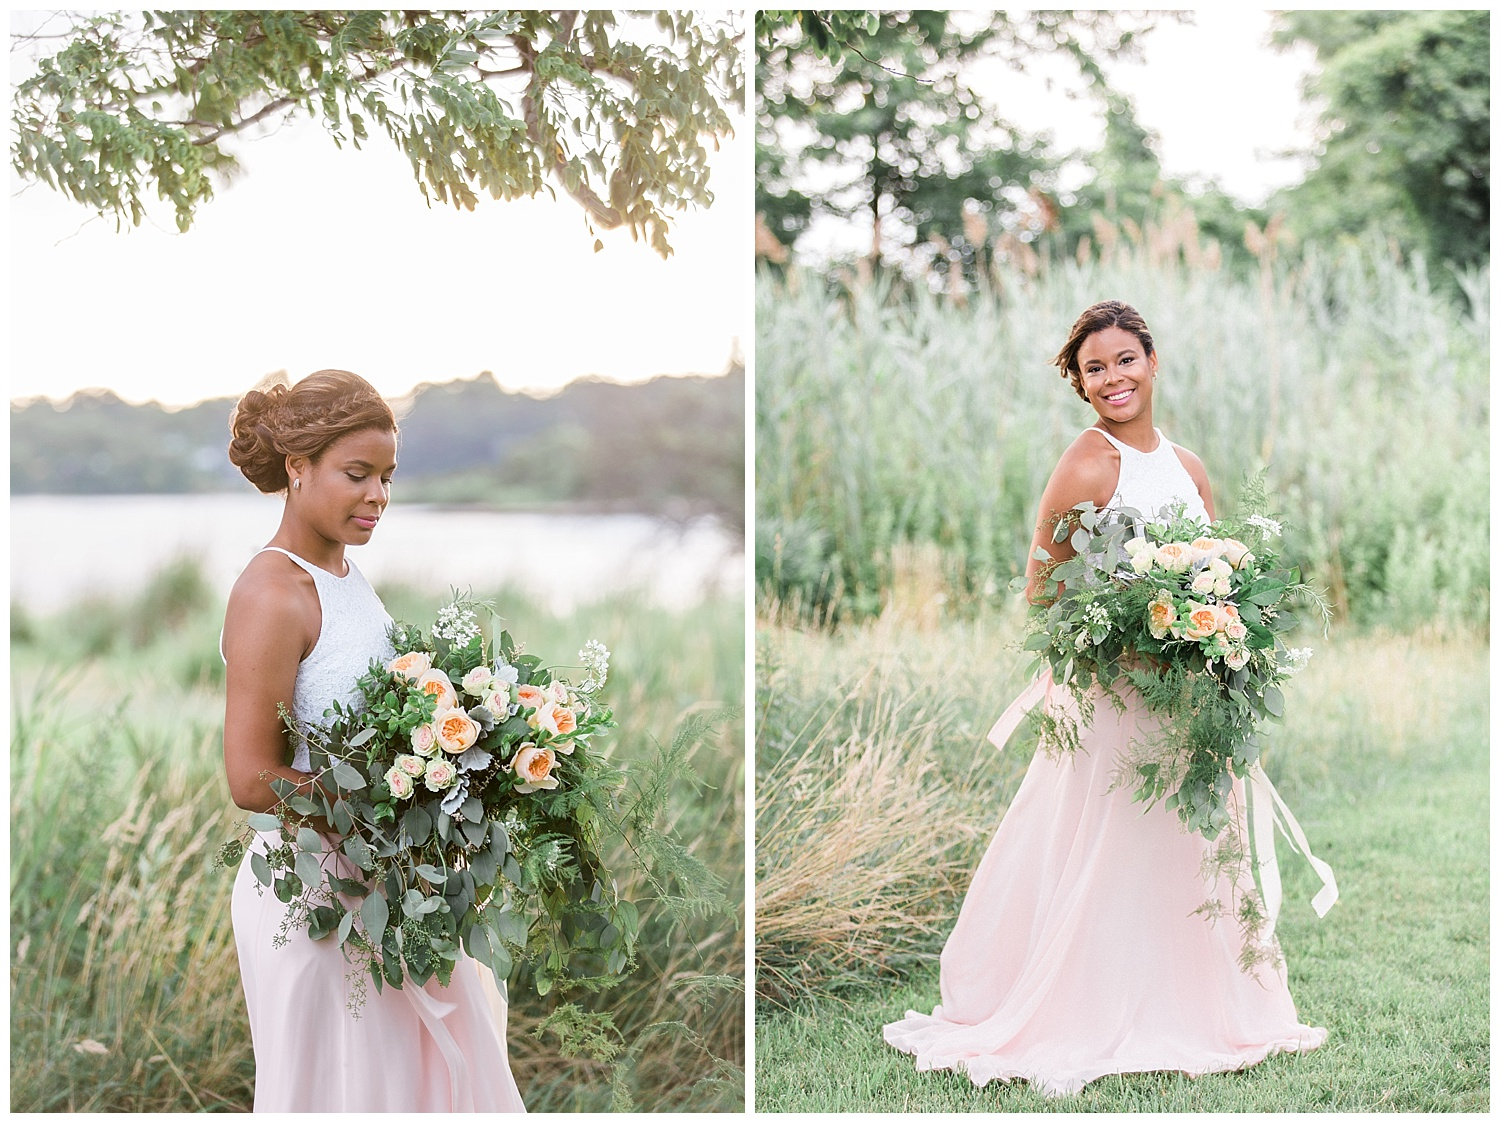 Connecticut Wedding Inspiration | Beach Wedding Inspiration | EDITH G. READ WILDLIFE SANCTUARY | www.redoakweddings.com